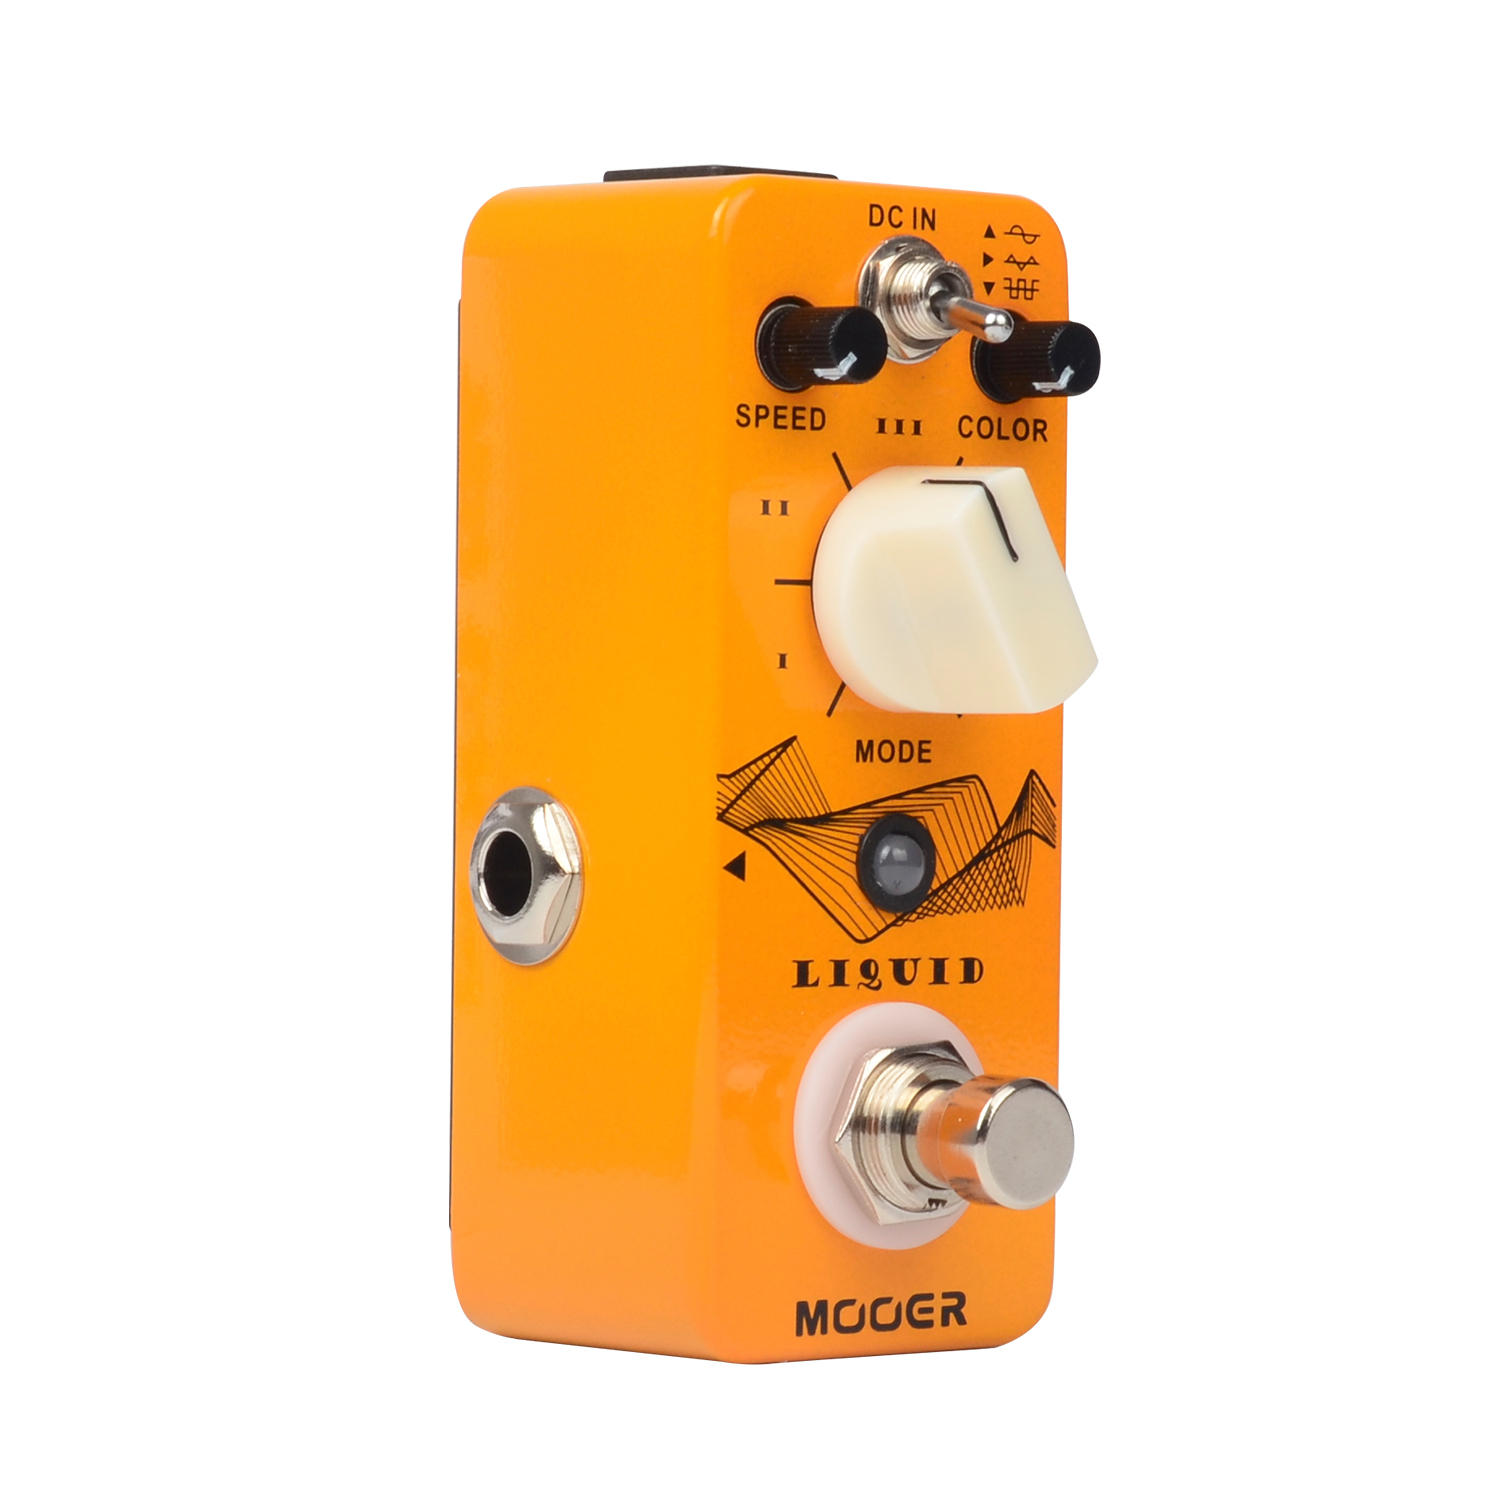 Mooer Liquid Digital Phaser Electric Guitar Effect Pedal Speed Color and Mix Controls Pocket  Size True Bypass Full Matel Shell mooer ninety orange micro analog phaser electric guitar effect pedal true bypass with free connector and footswitch topper